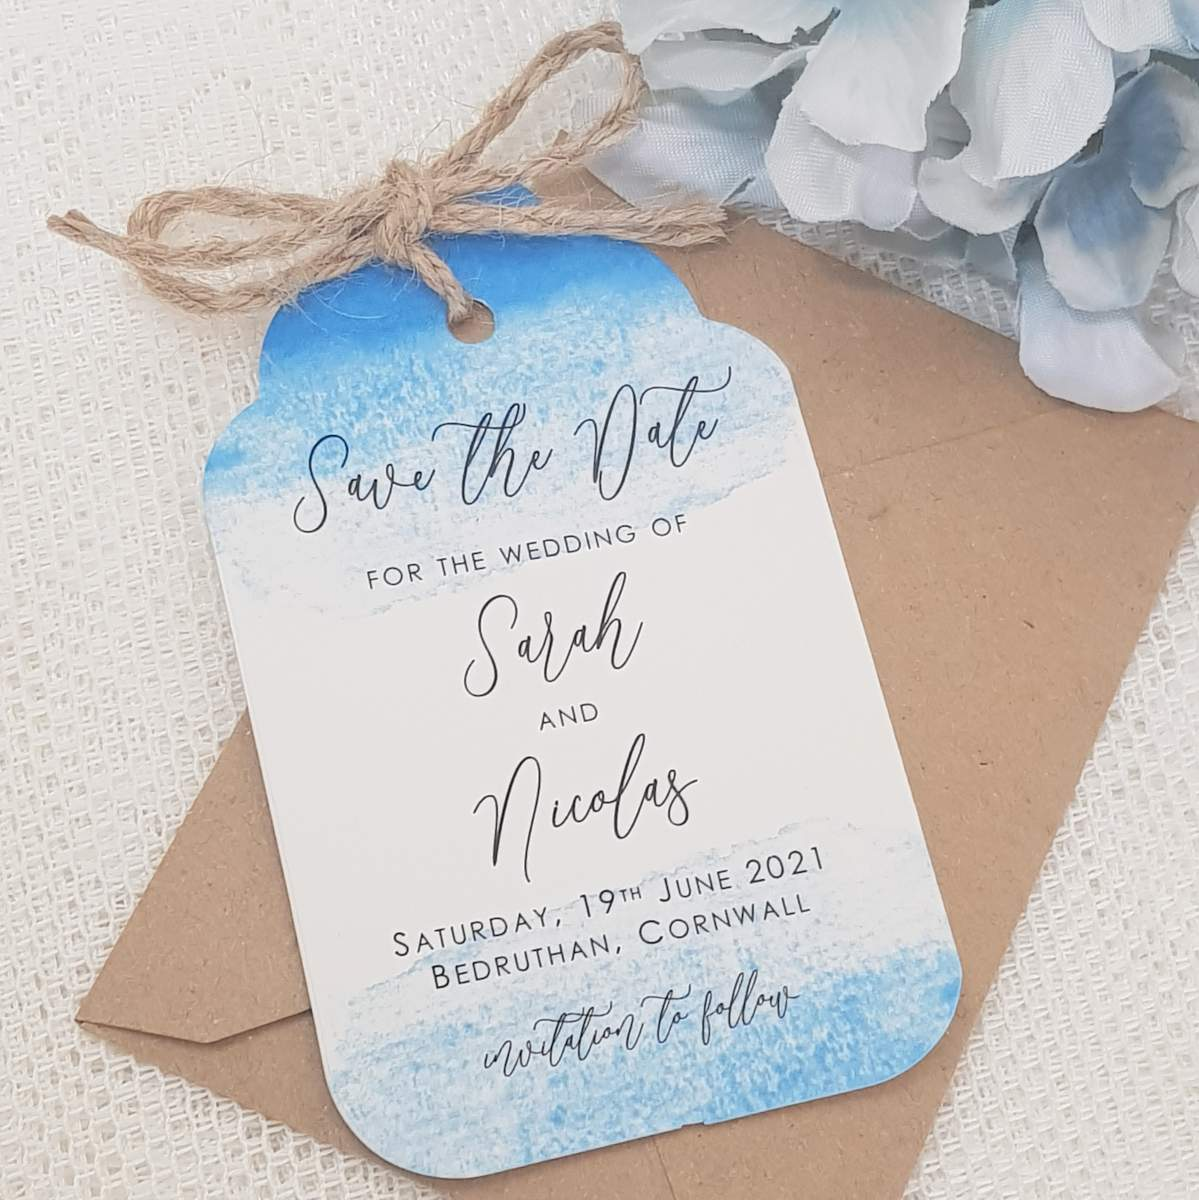 Luggage tag style save the date card with a blue watercolour print, tied with natural twine